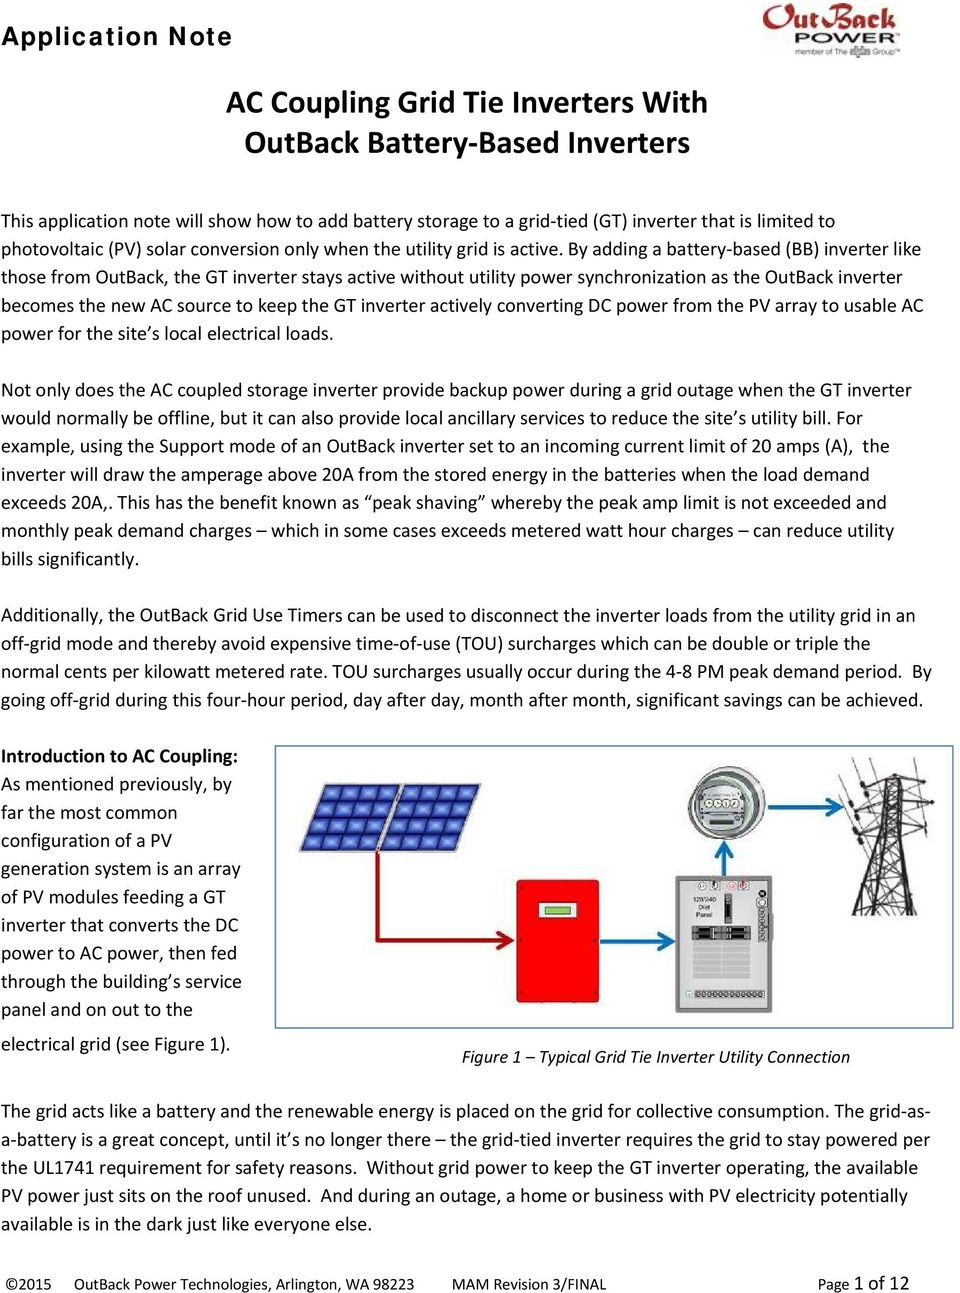 Ac Coupling Grid Tie Inverters With Outback Battery Based Fig 1 Basic Accoupling Circuit By Adding A Bb Inverter Like Those From The Gt